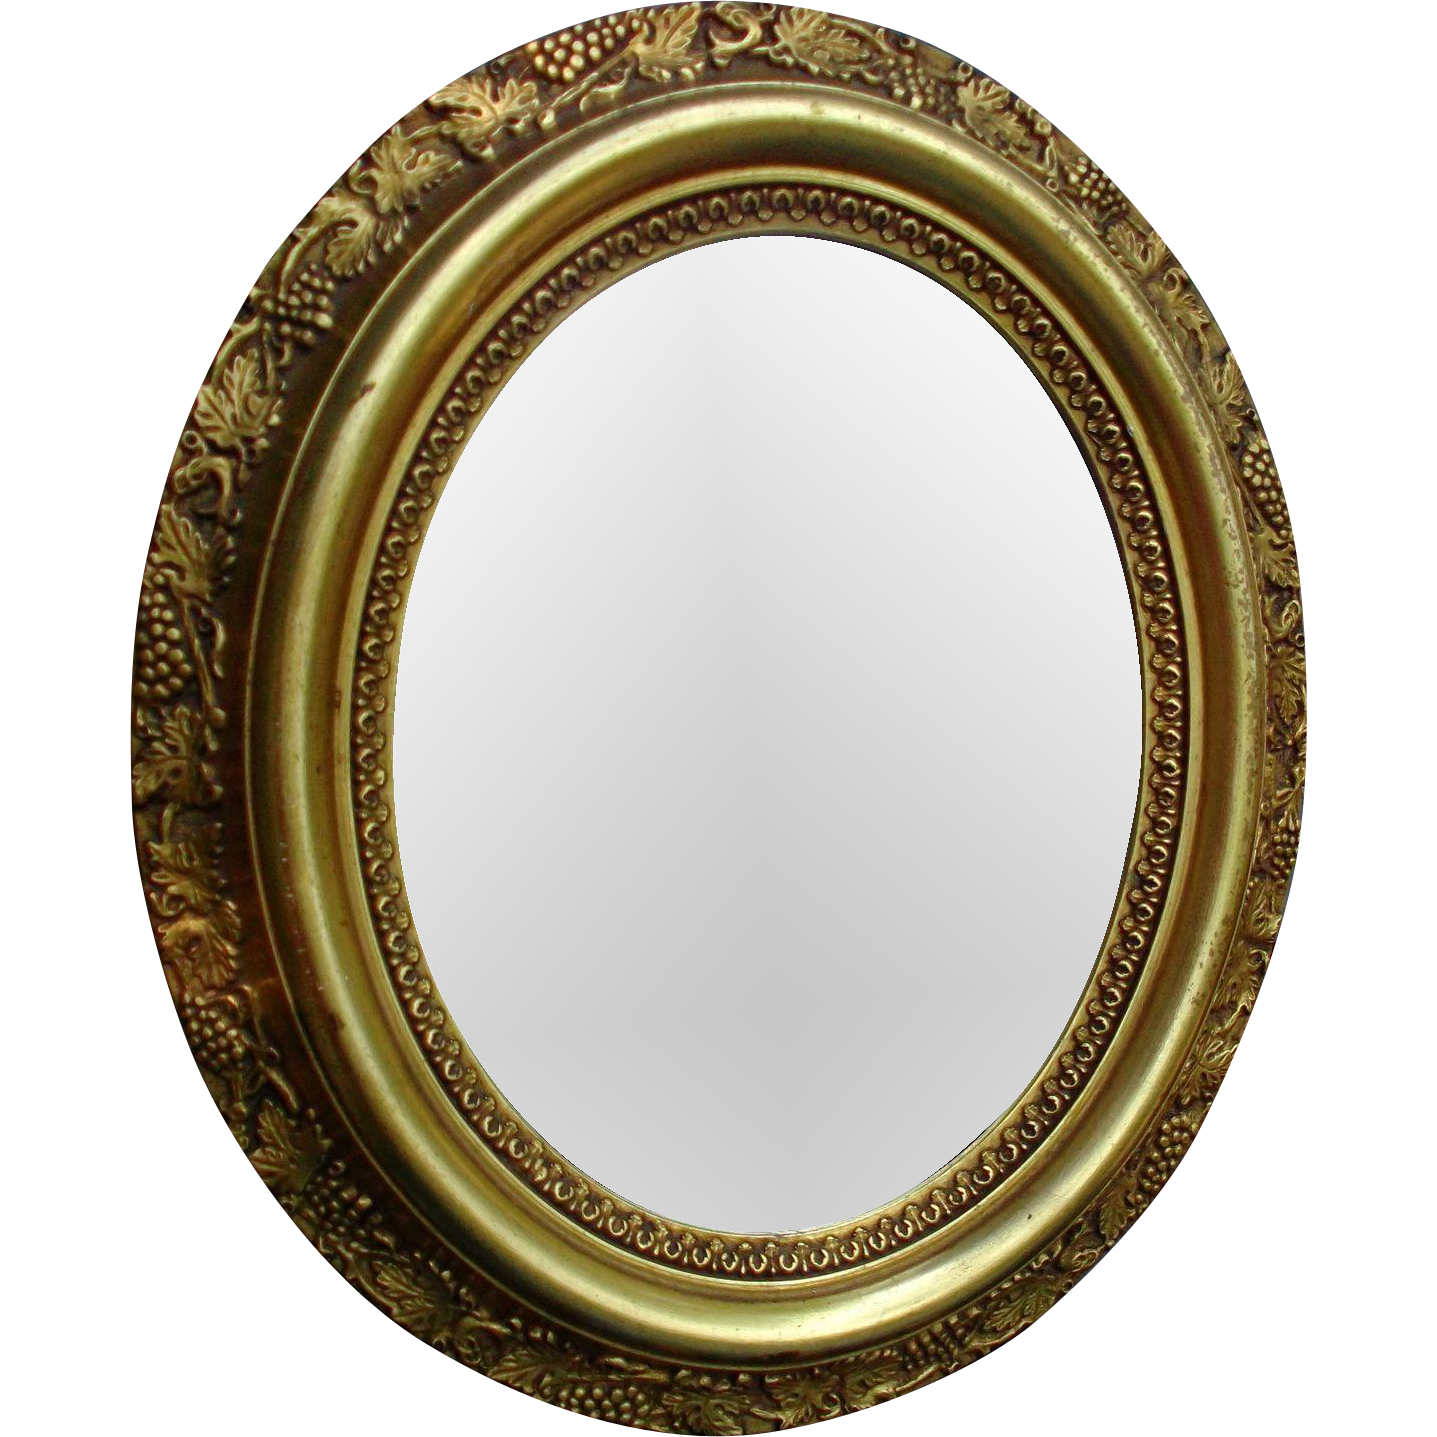 Old Wood Mirror Gold Paint Ormolu Leaves Grapes Home Decor